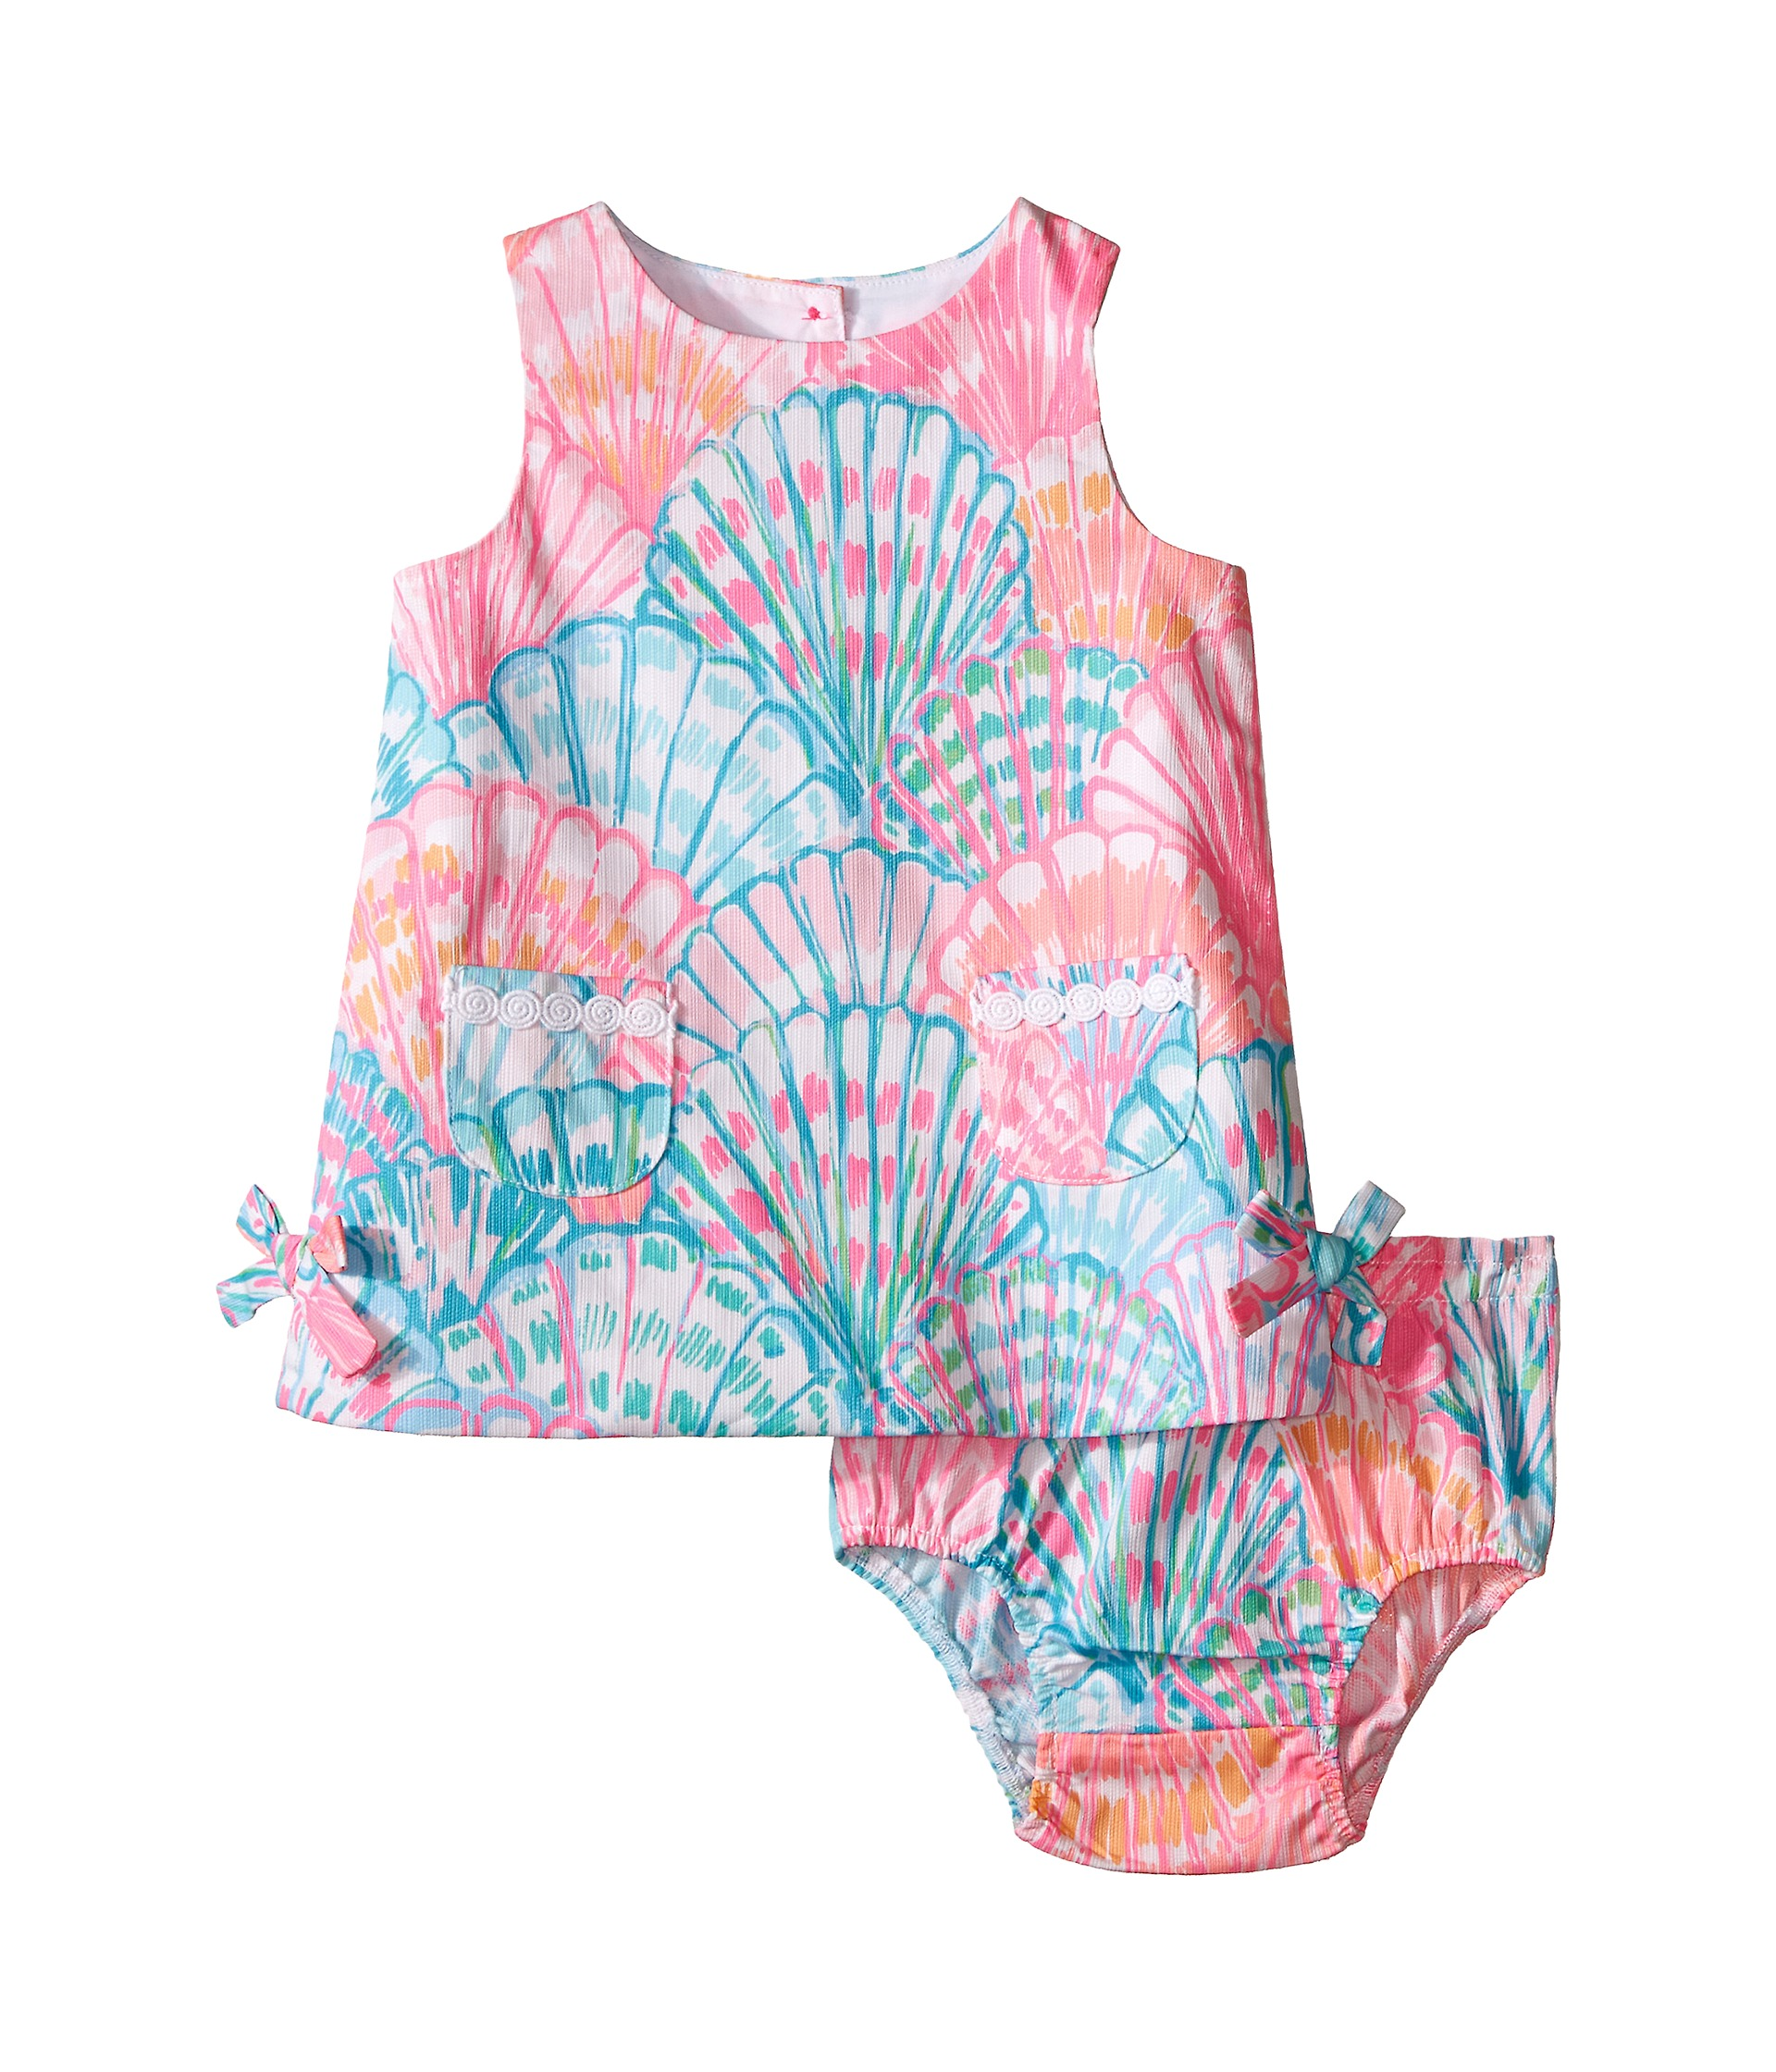 Lilly Pulitzer Kids Baby Lilly Shift Dress Infant at